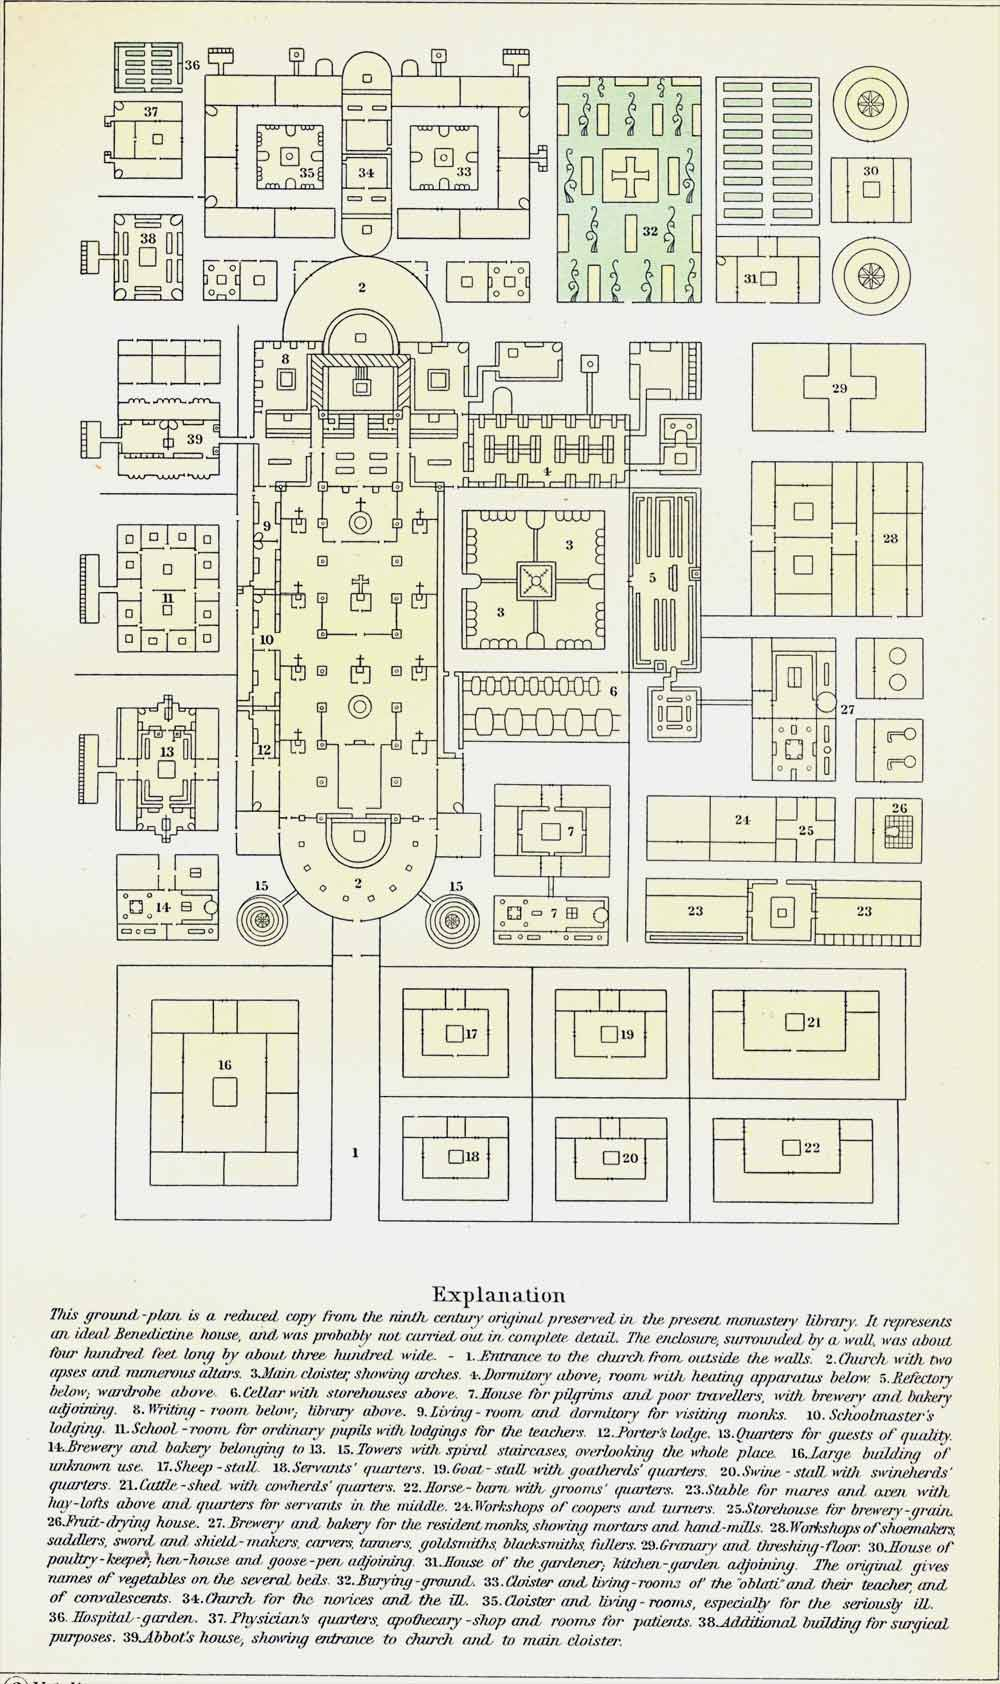 Ground Plan of a Monastery